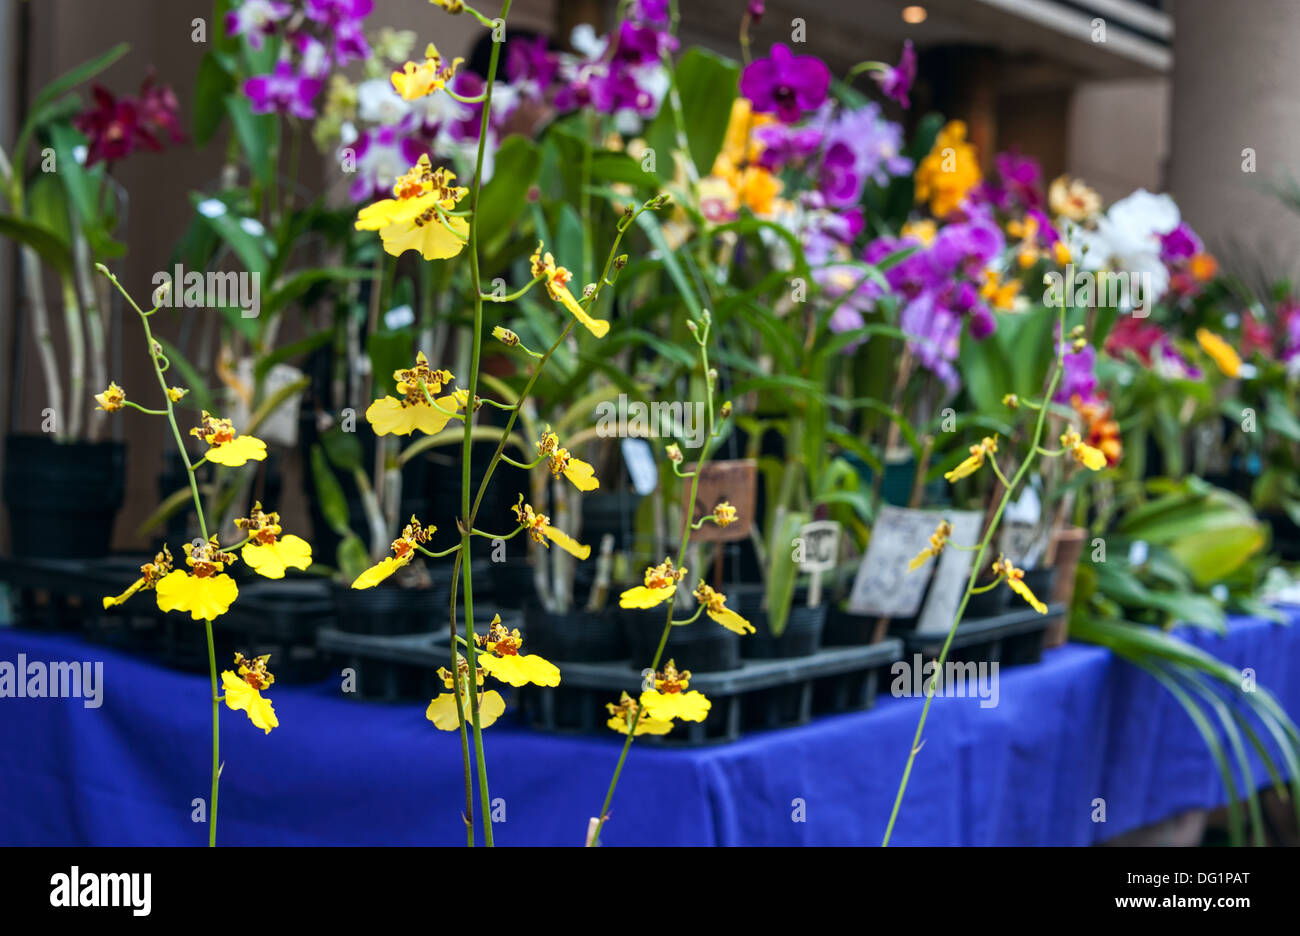 Street market of orchids in Asuncion, Paraguay. - Stock Image